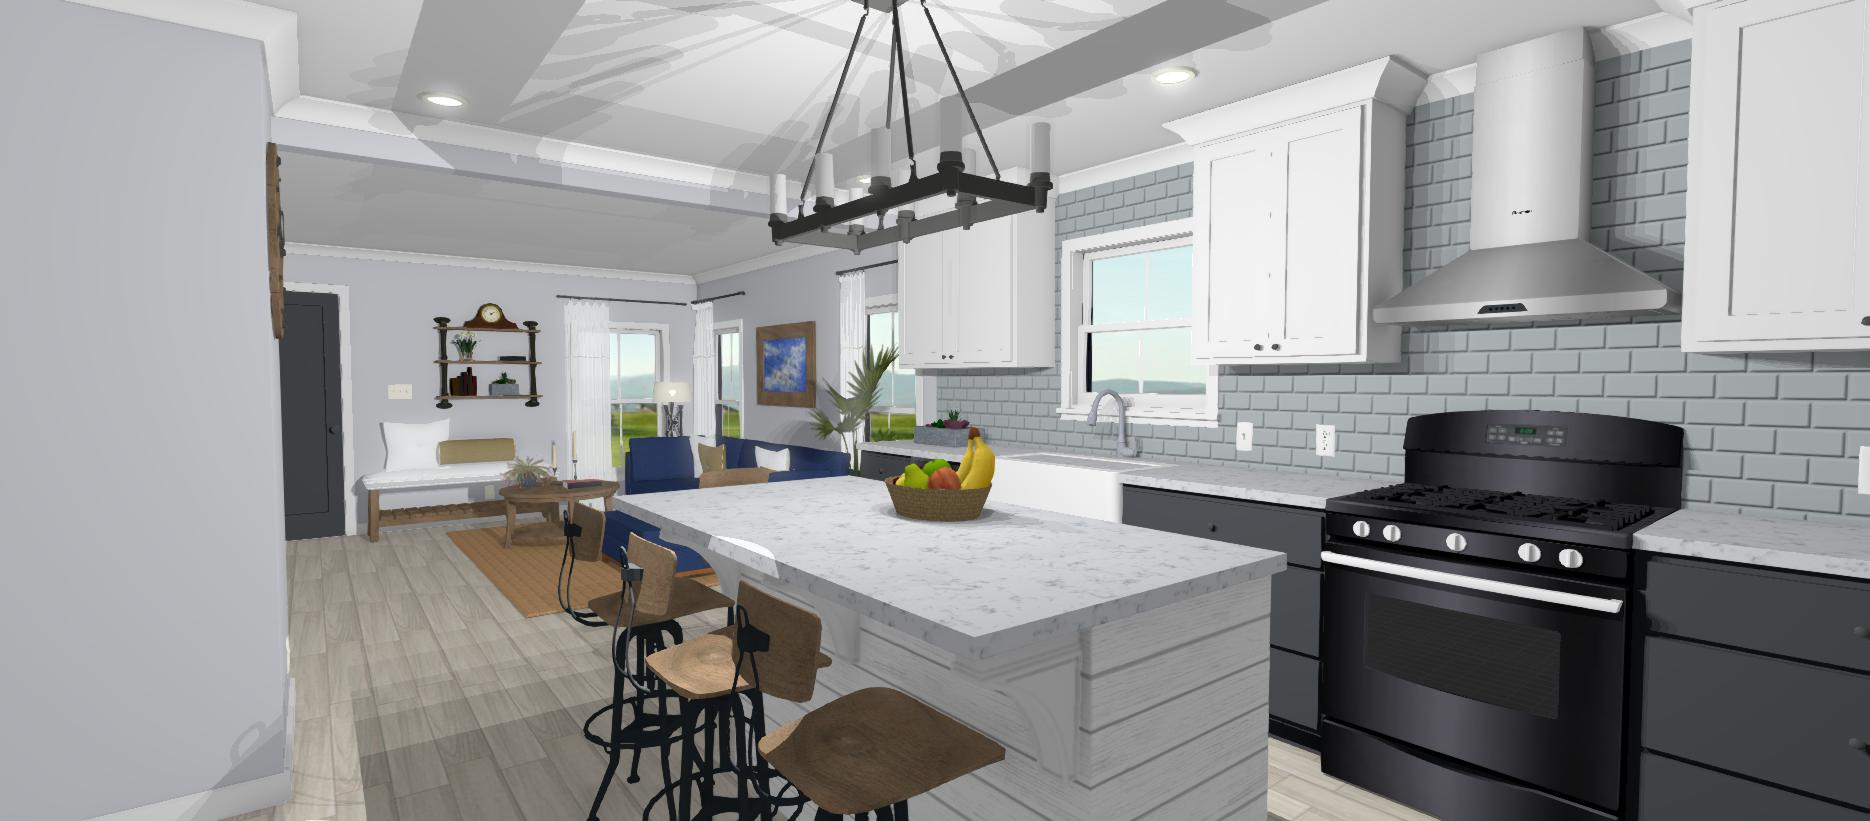 Home Design Renderings